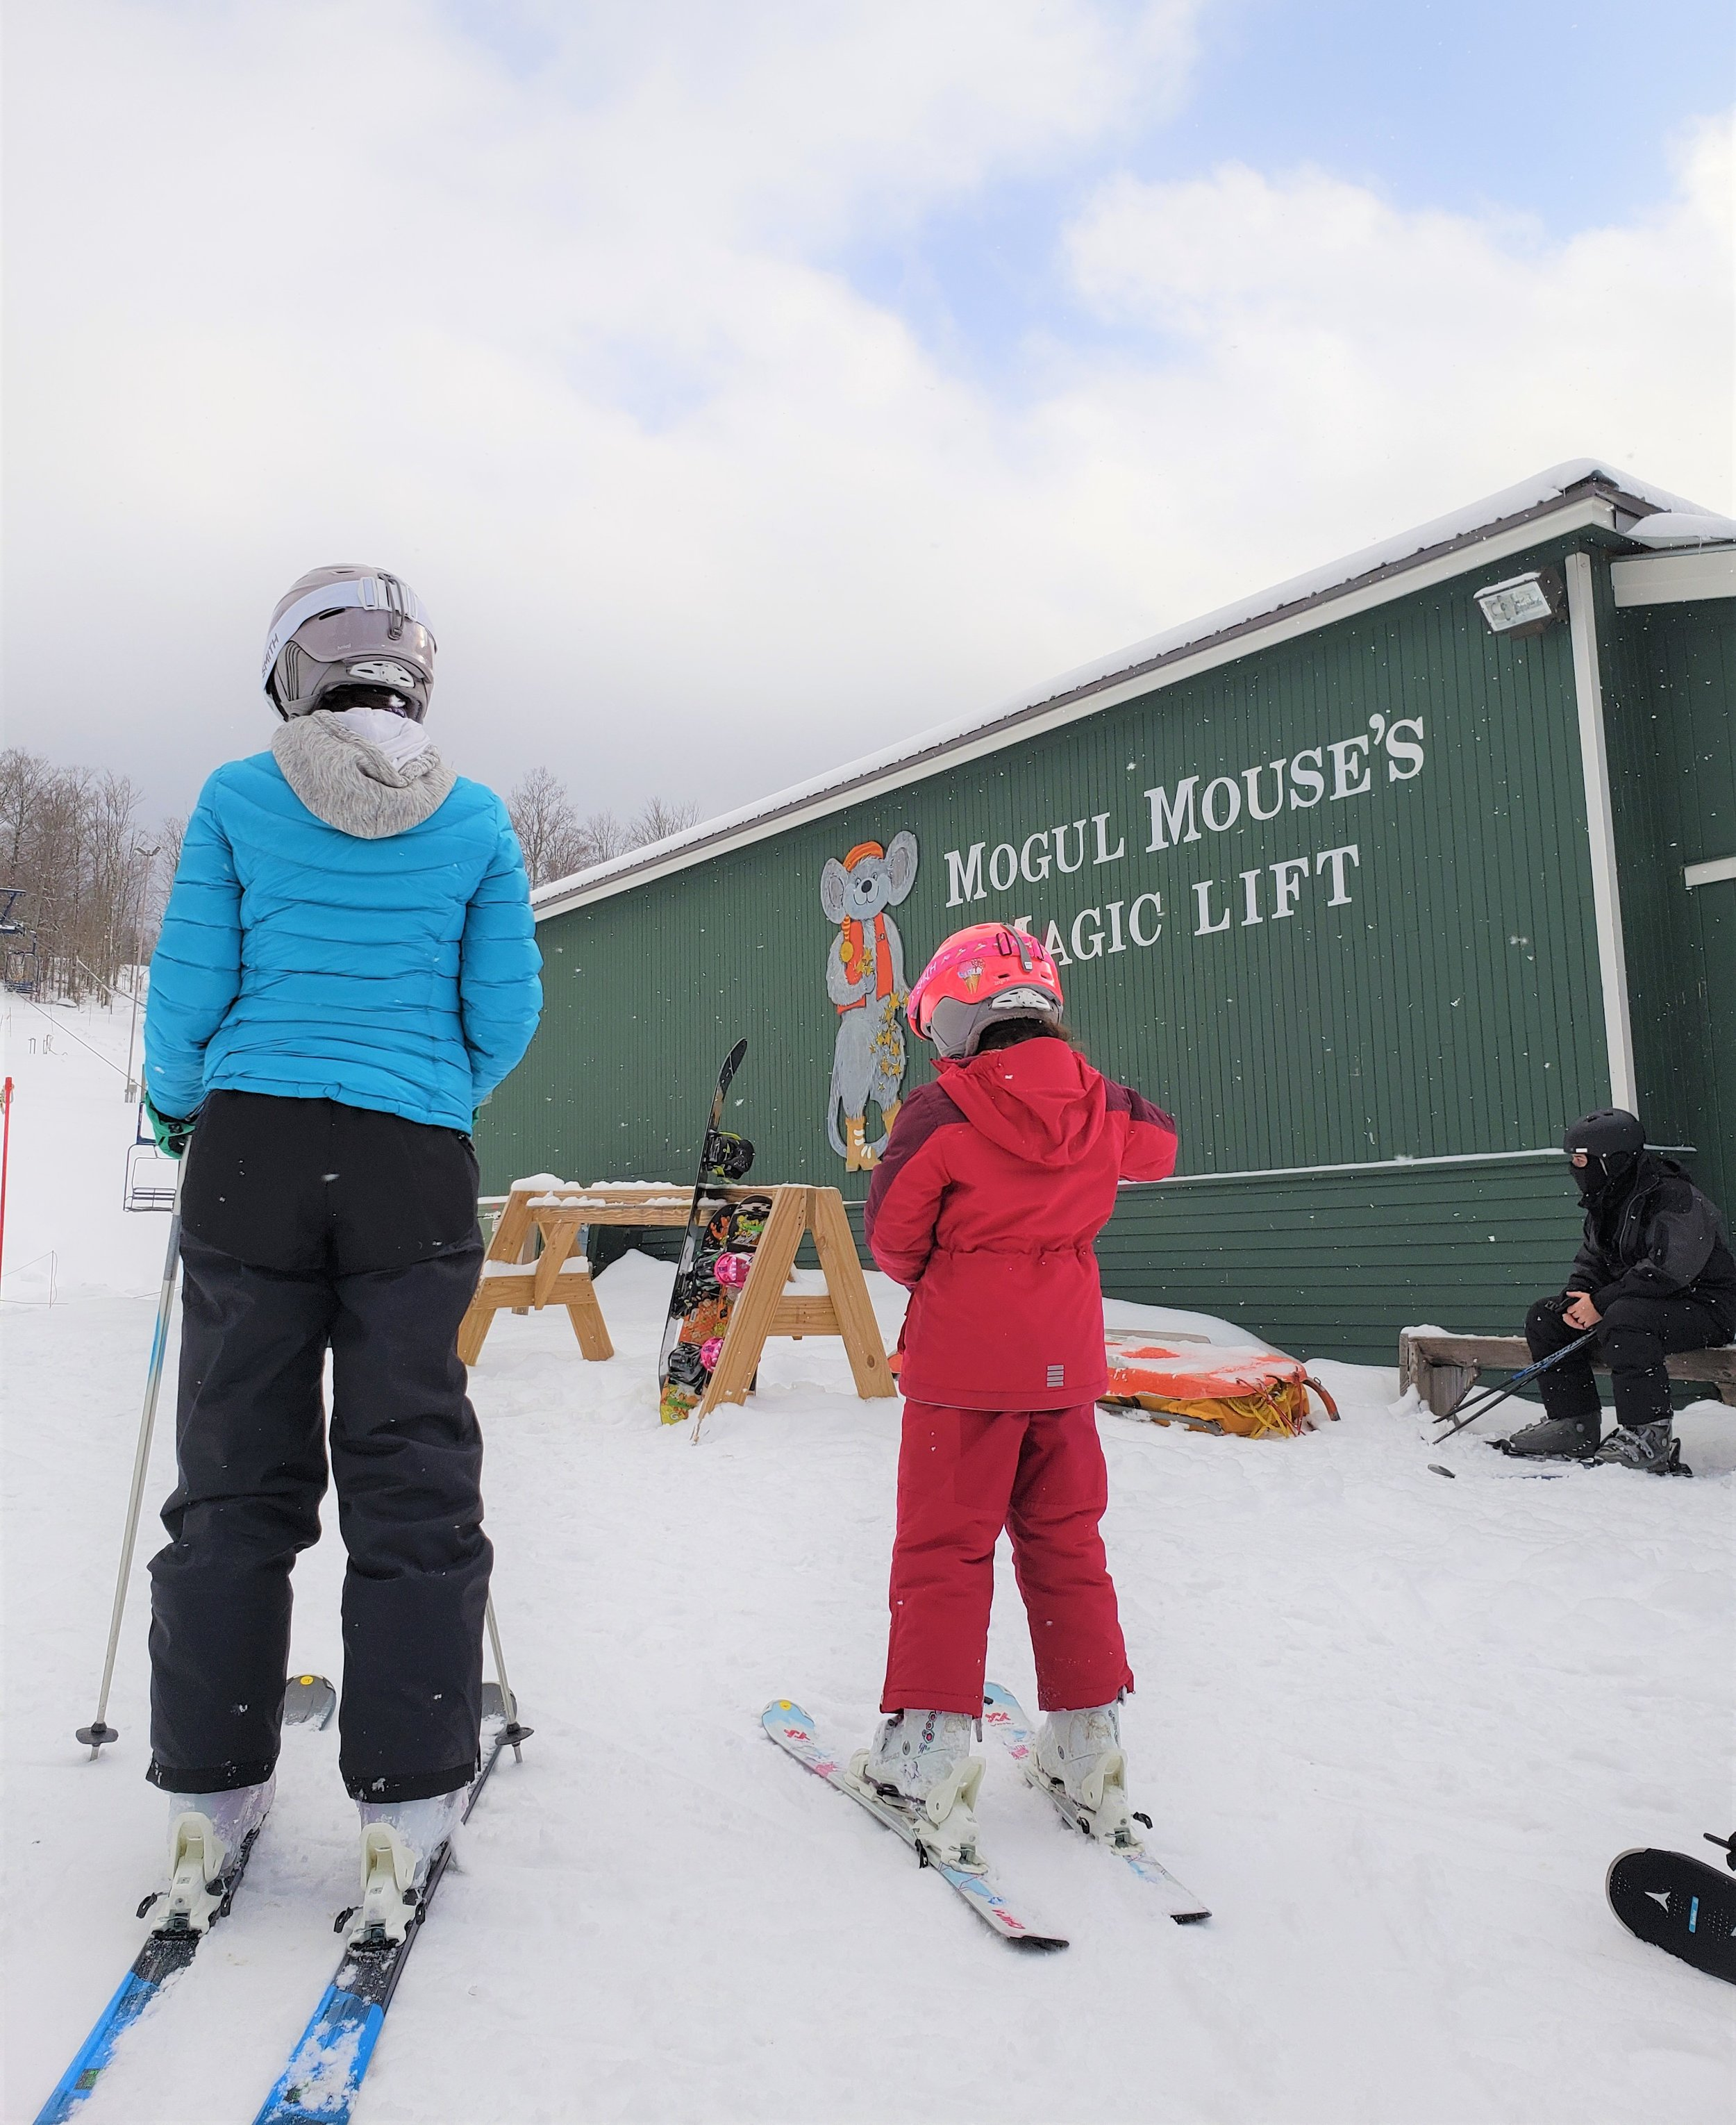 Mogul Mouse's Magic Lift at Smugglers' Notch